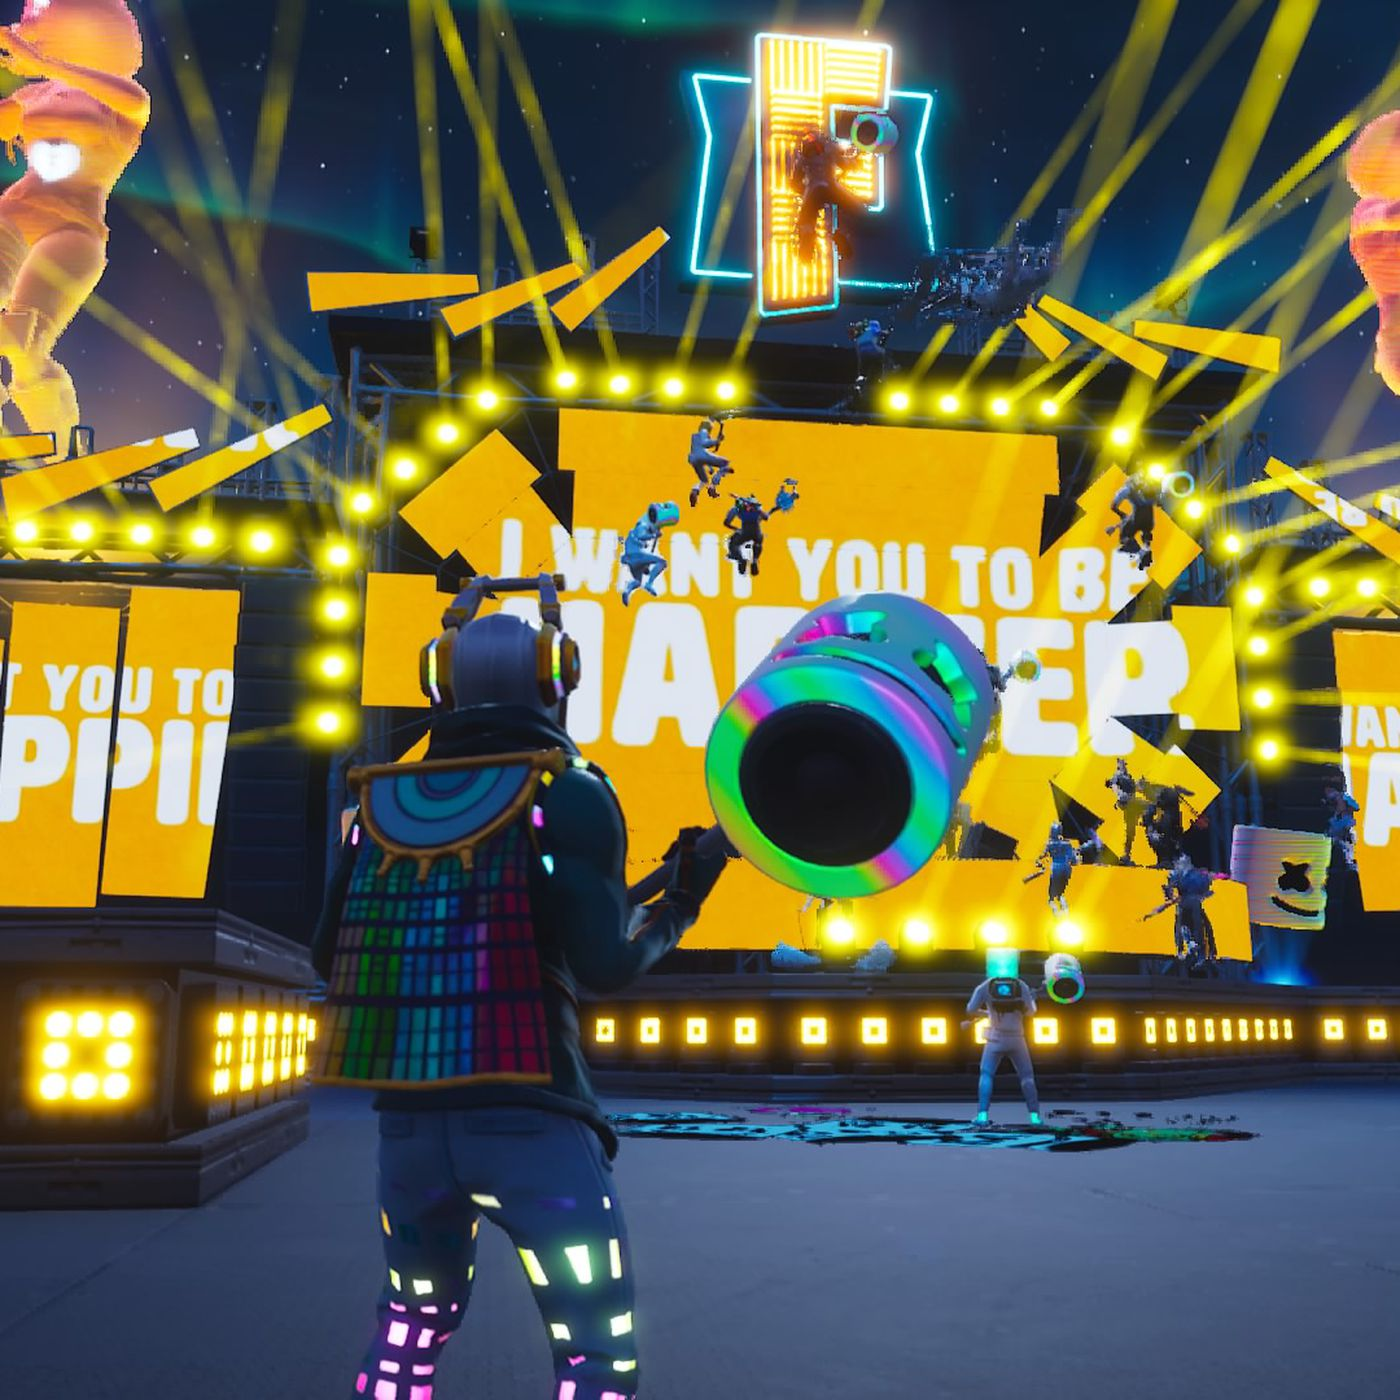 Fortnite S Marshmello Concert Was A Bizarre And Exciting Glimpse Of The Future The Verge